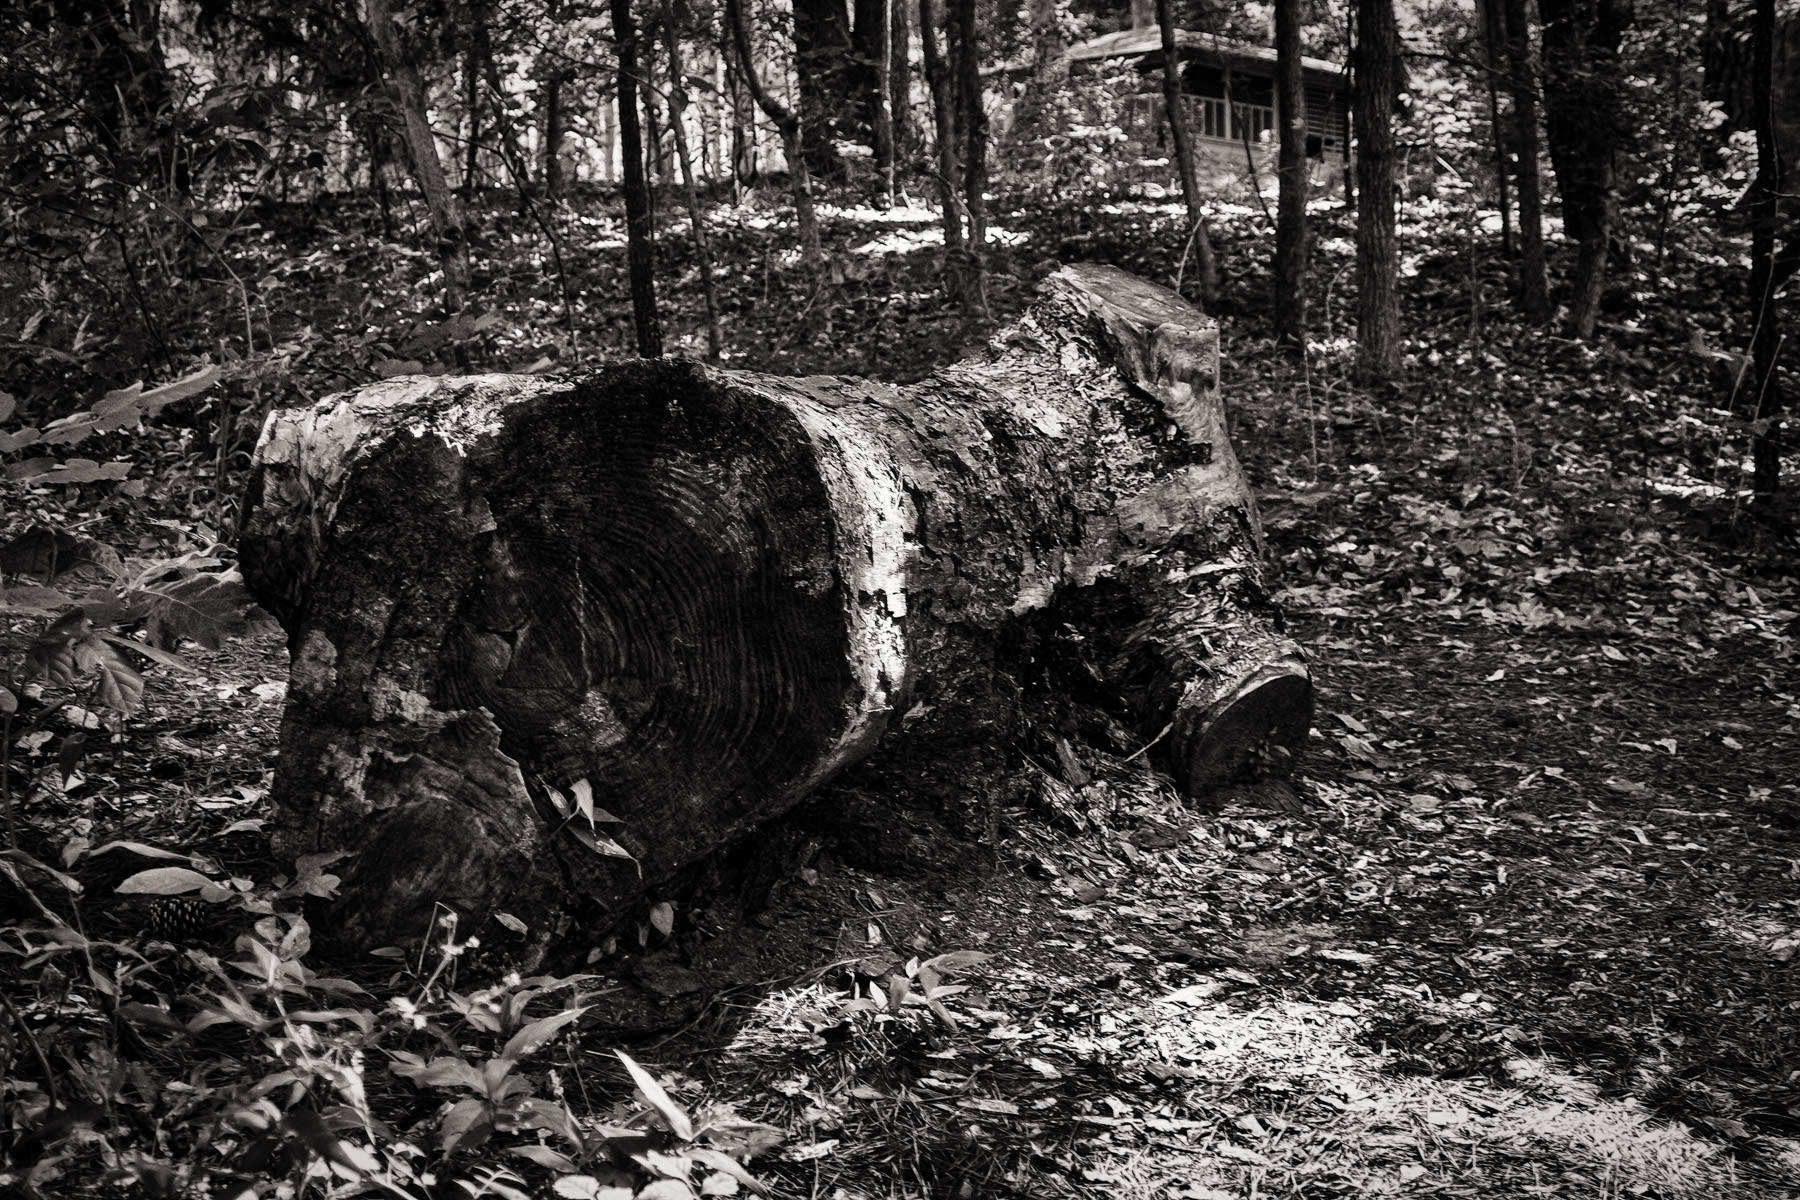 A log lies on the ground at Tyler State Park, Texas.